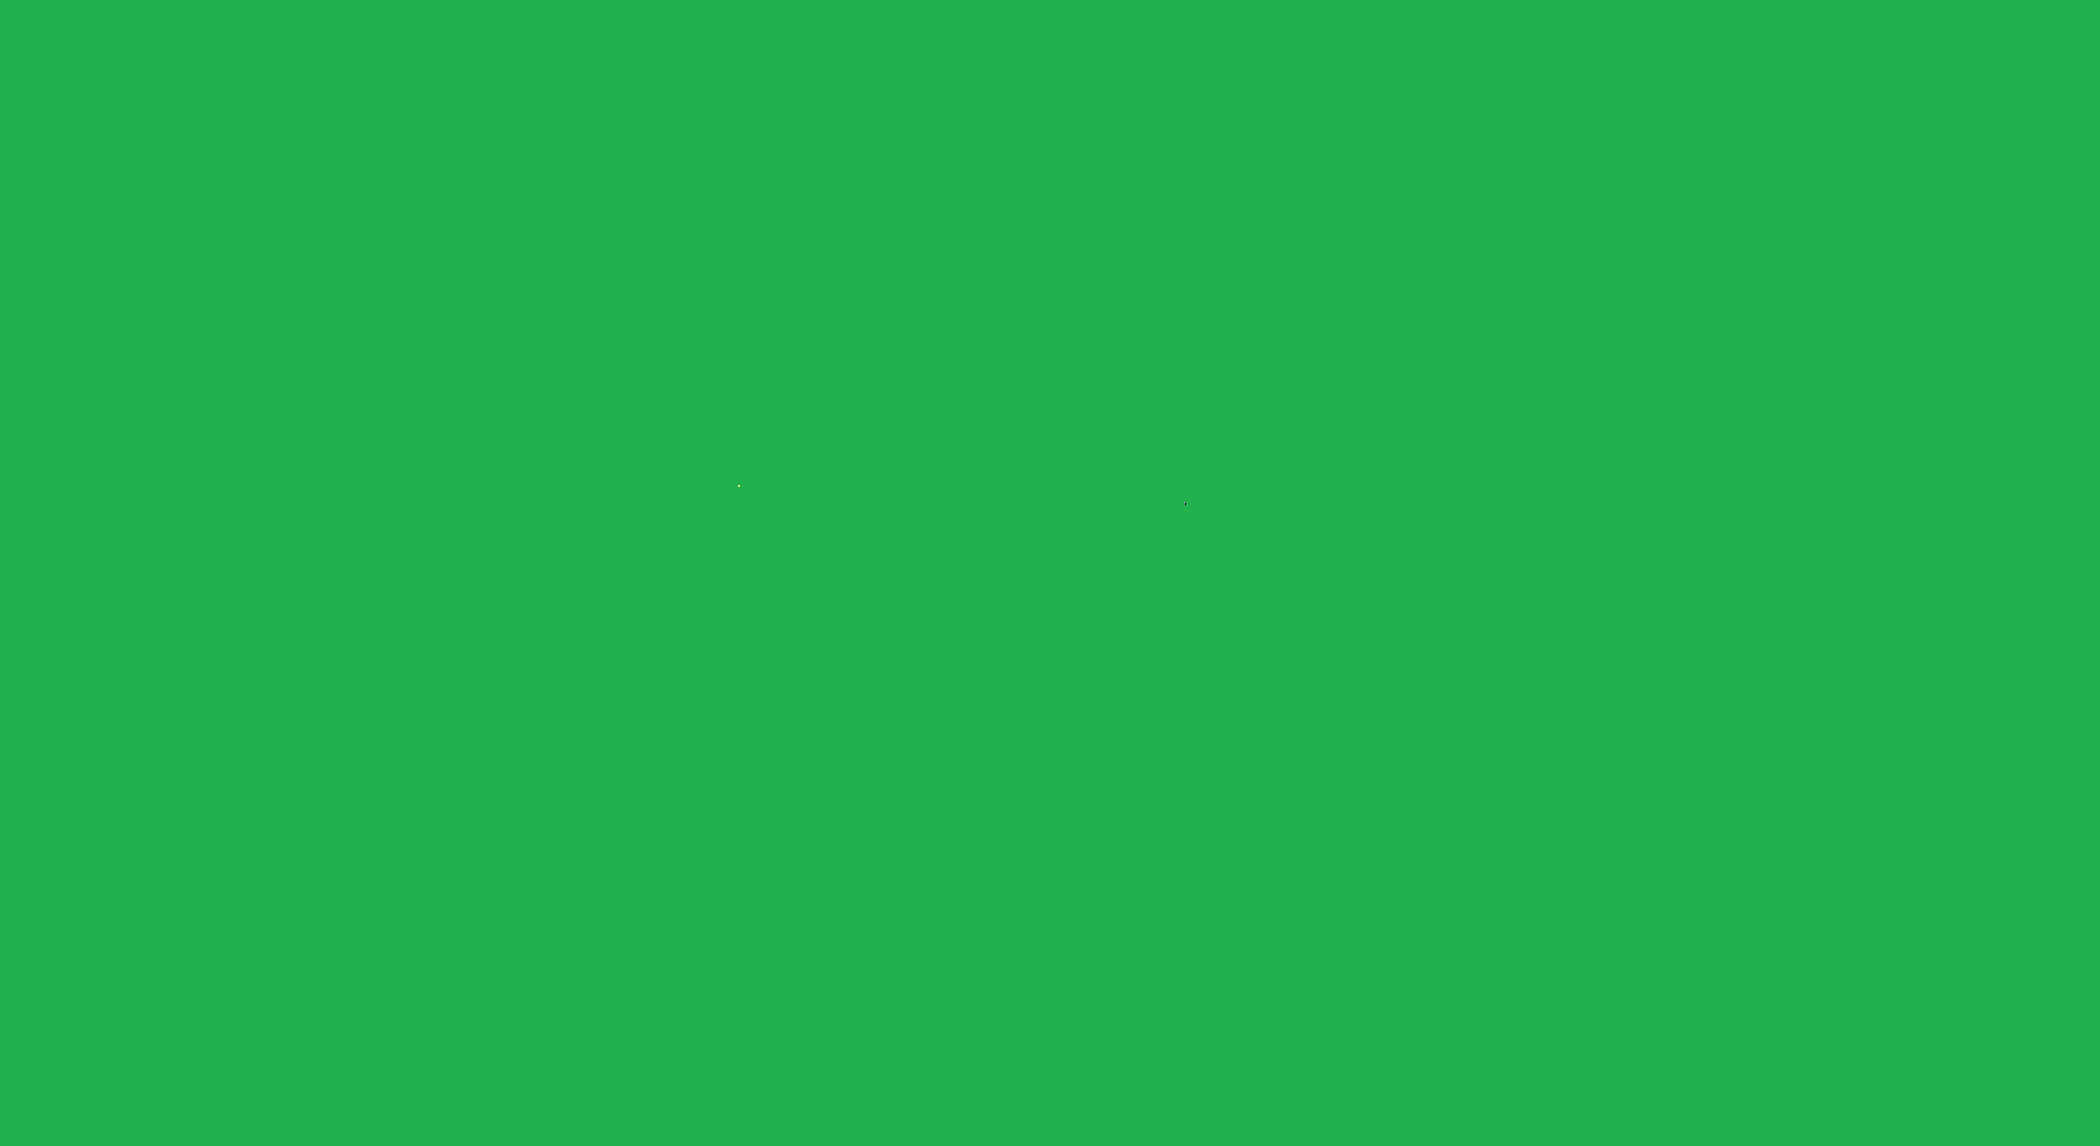 GreenBackground